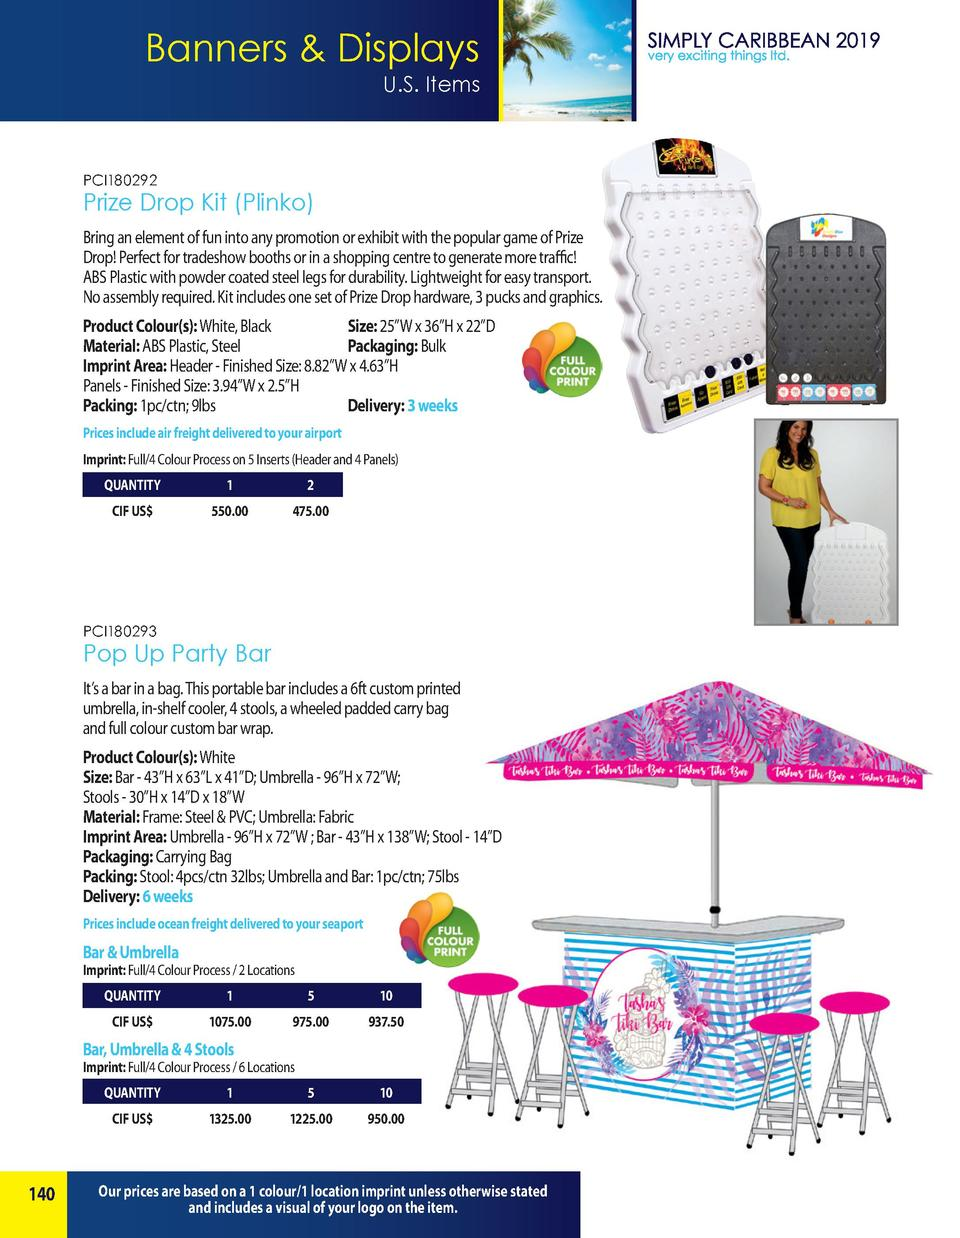 Banners   Displays U.S. Items  PCI180292  Prize Drop Kit  Plinko  Bring an element of fun into any promotion or exhibit wi...